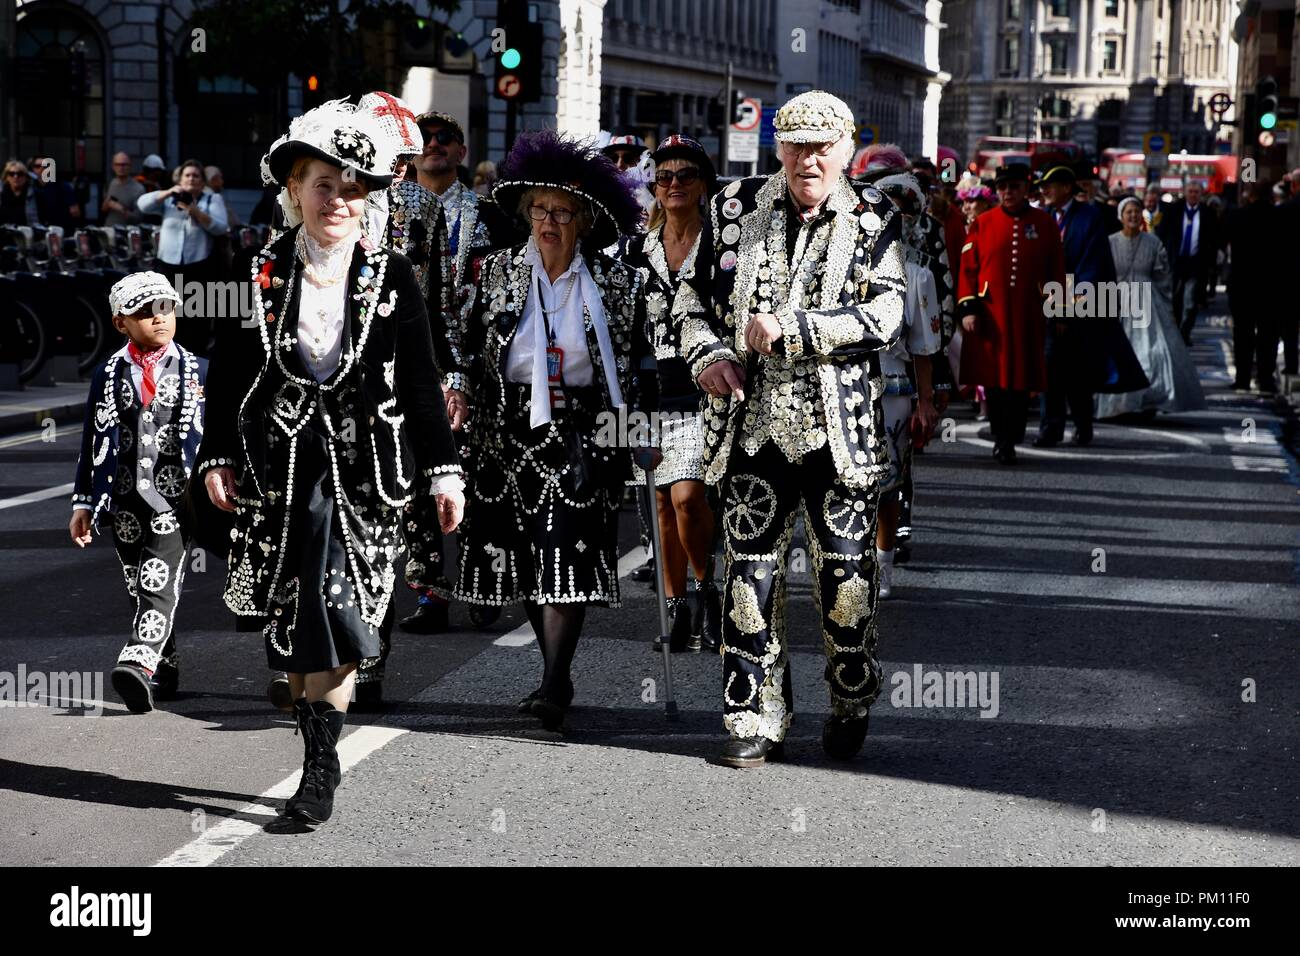 London, UK. 16th Sep, 2018. The 20th anniversary of the annual Pearly Kings and Queens Harvest Festival.The Pearlies paraded from Guildhall Yard to St Mary Le Bow Church for a service of thanksgiving.City of London.UK Credit: michael melia/Alamy Live News - Stock Image